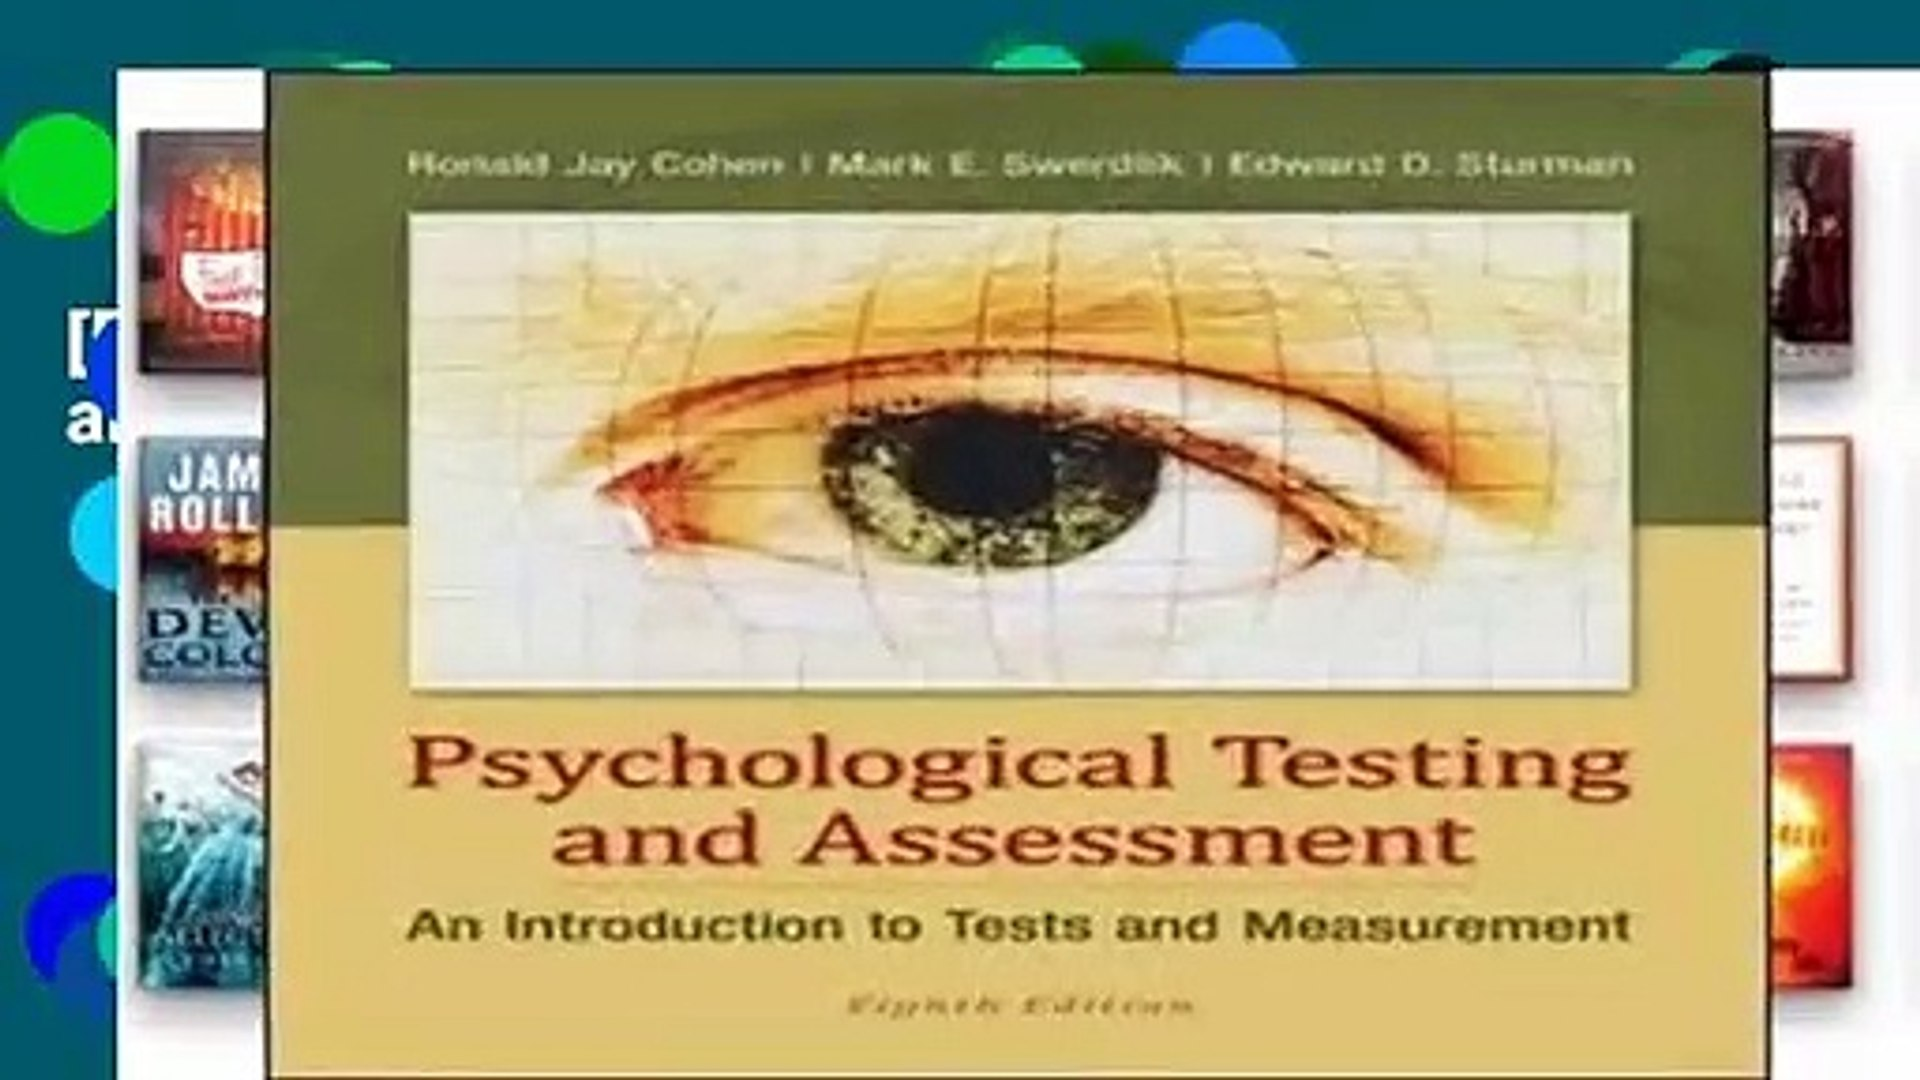 [FREE] Psychological Testing and Assessment